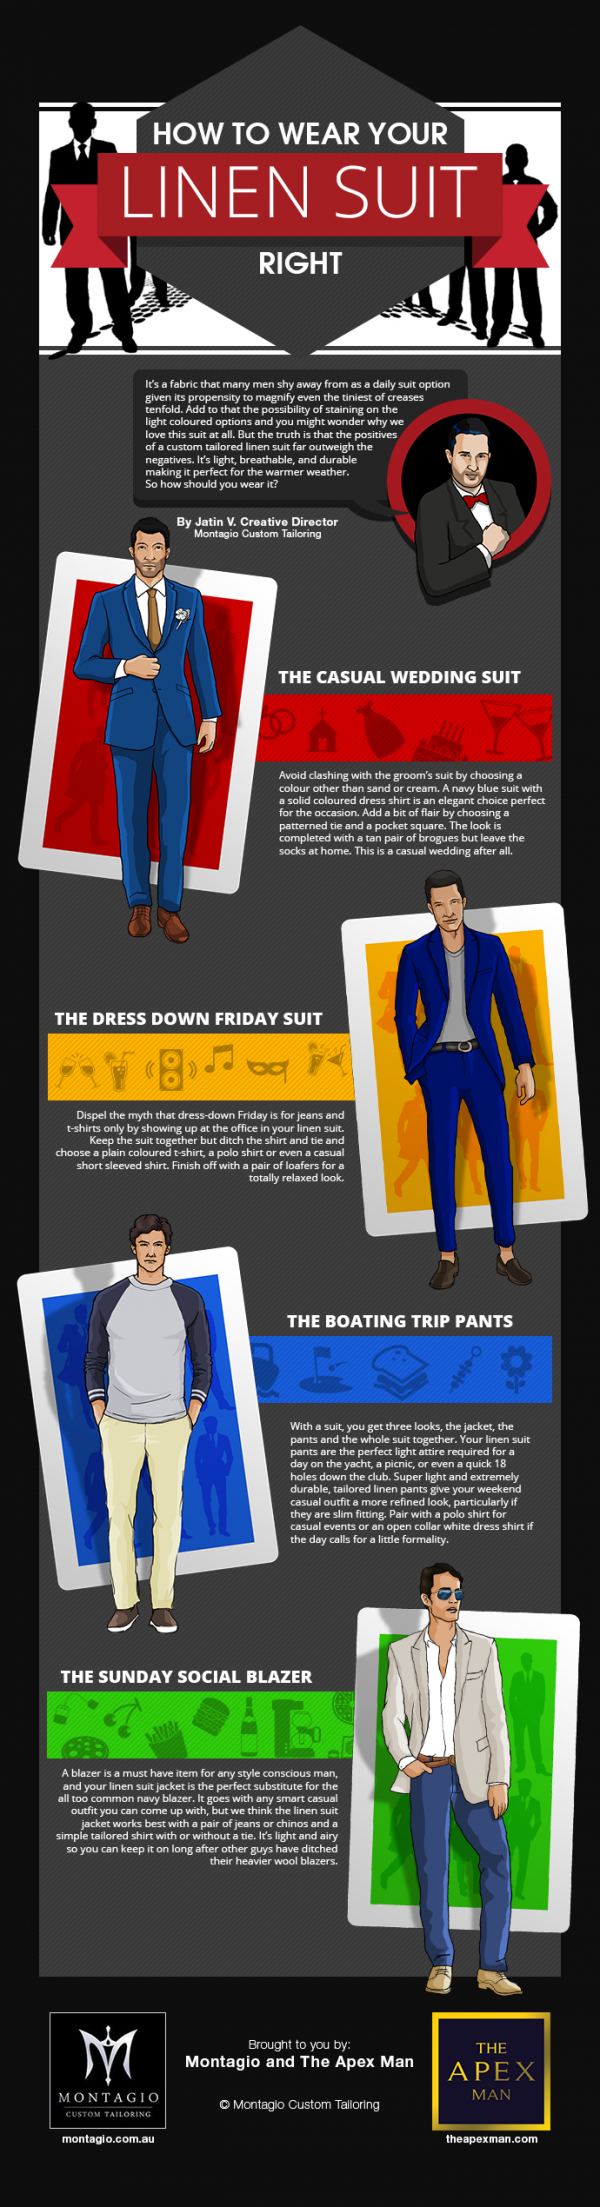 How-to-Wear-Your-Linen-Suit-Right-infograph